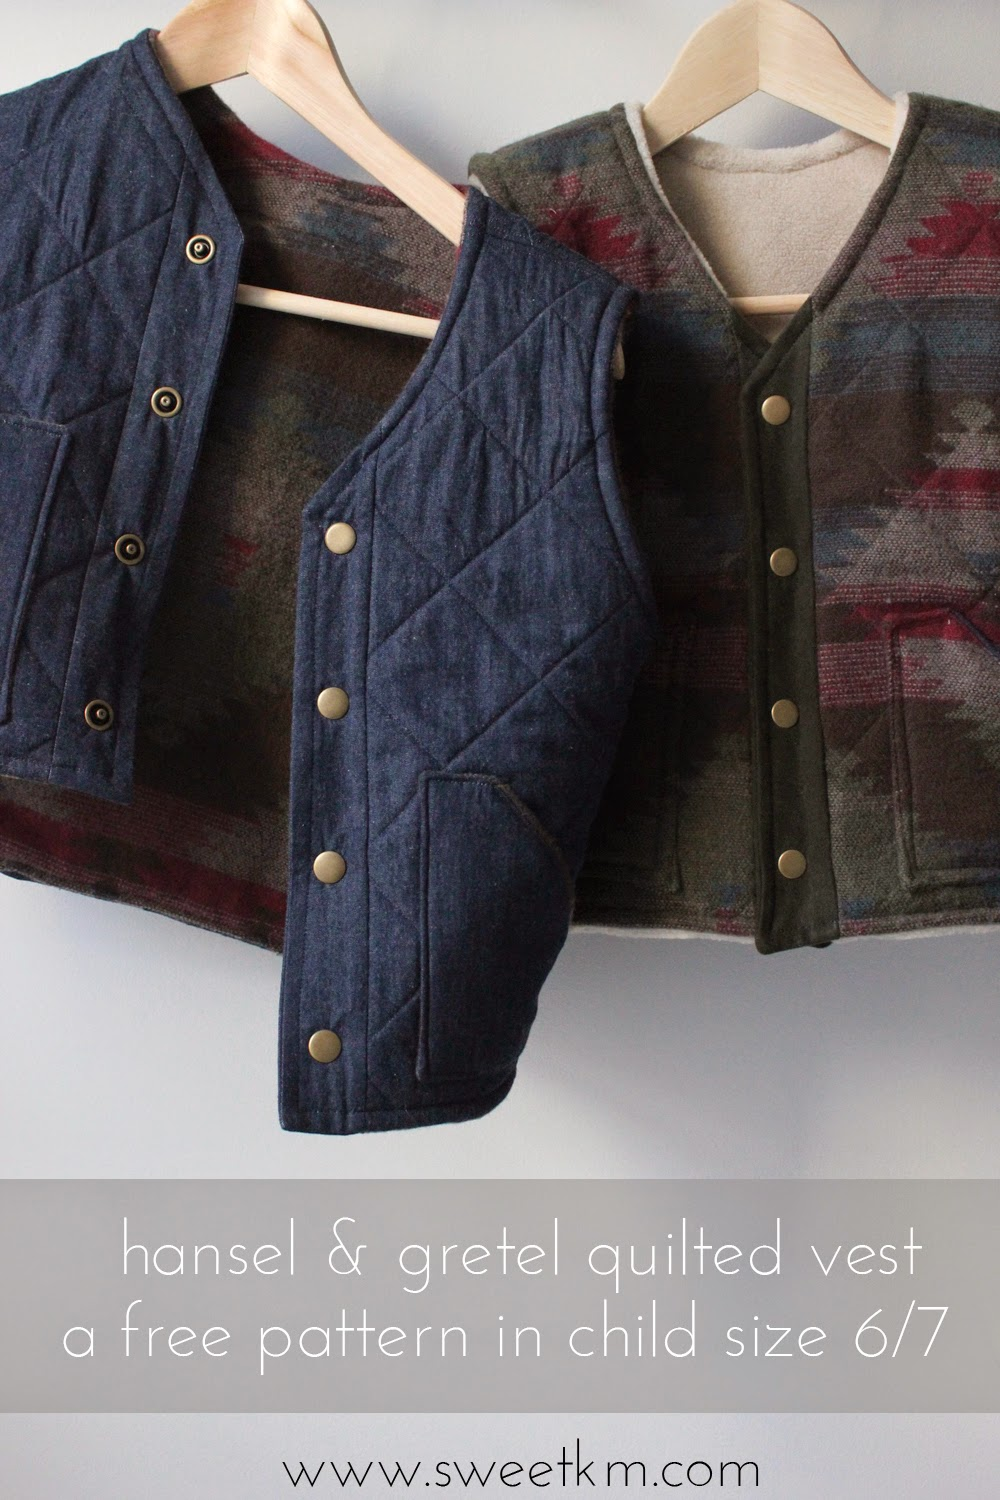 SweetKM: Free Pattern: Hansel & Gretel Quilted Vest Instructions